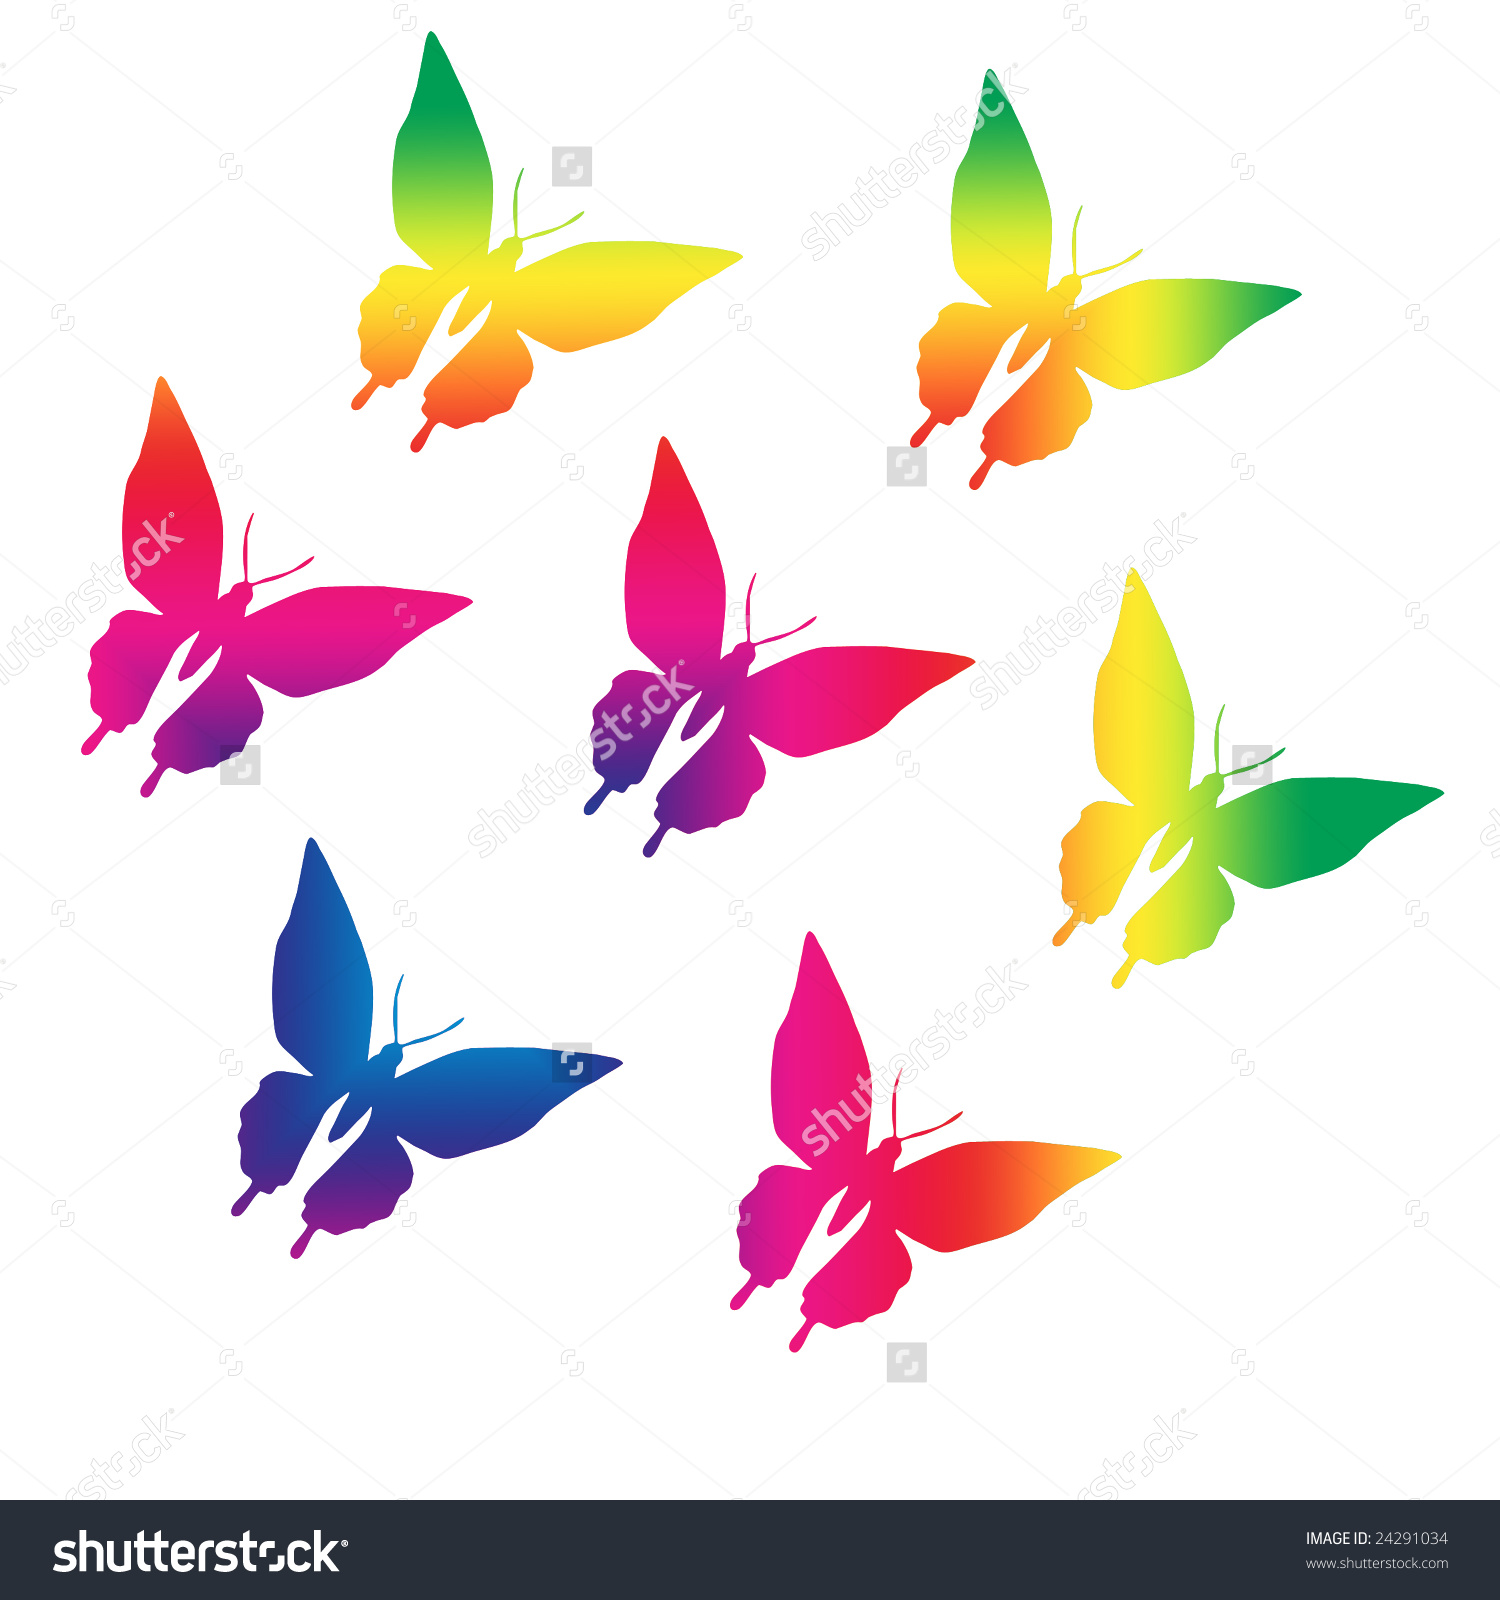 Rainbow Butterfly clipart #17, Download drawings